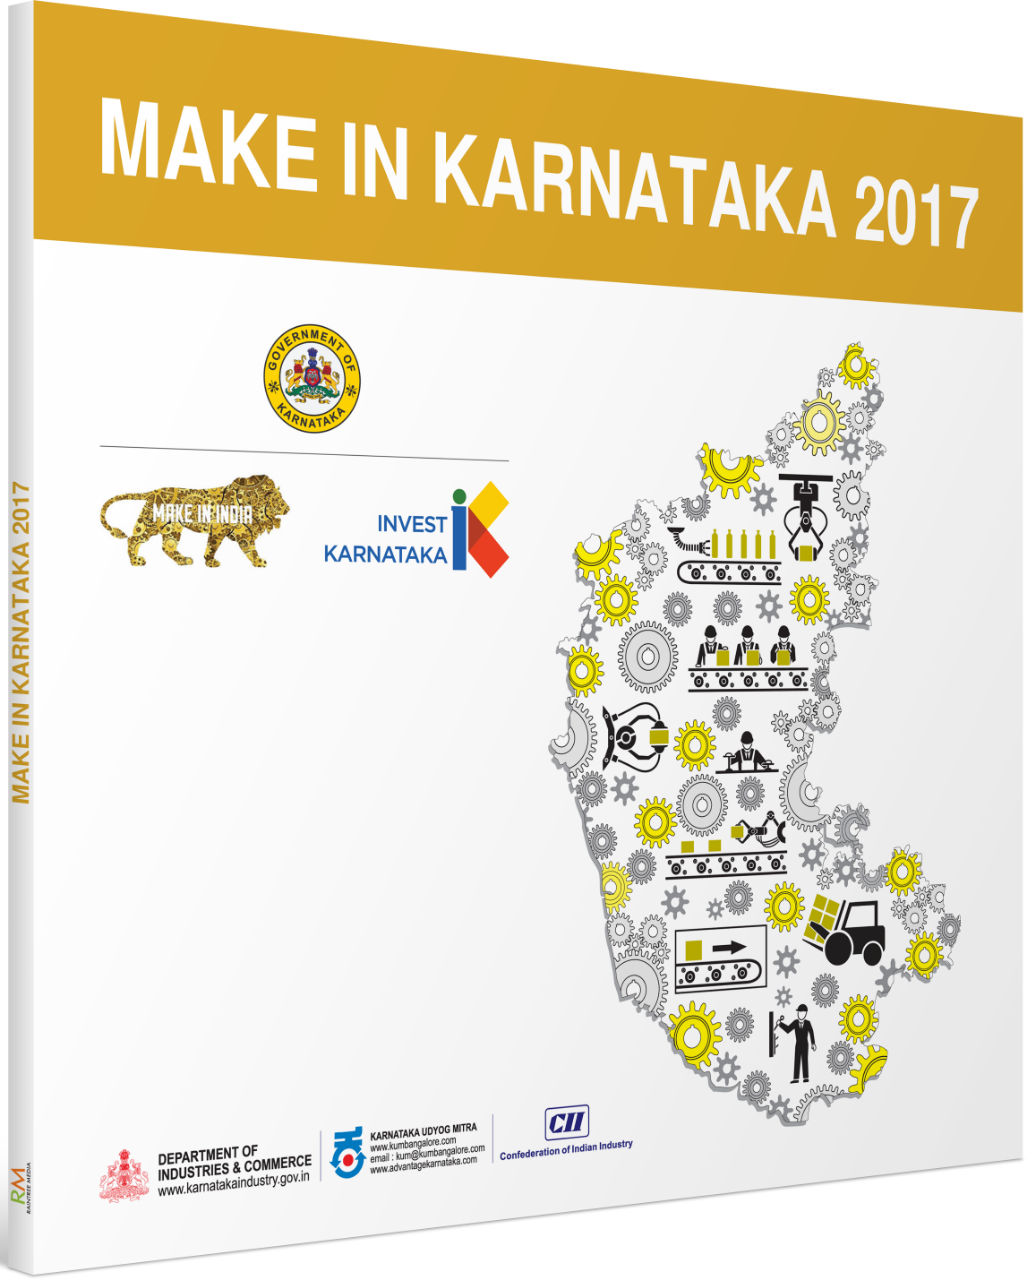 Make in Karnataka